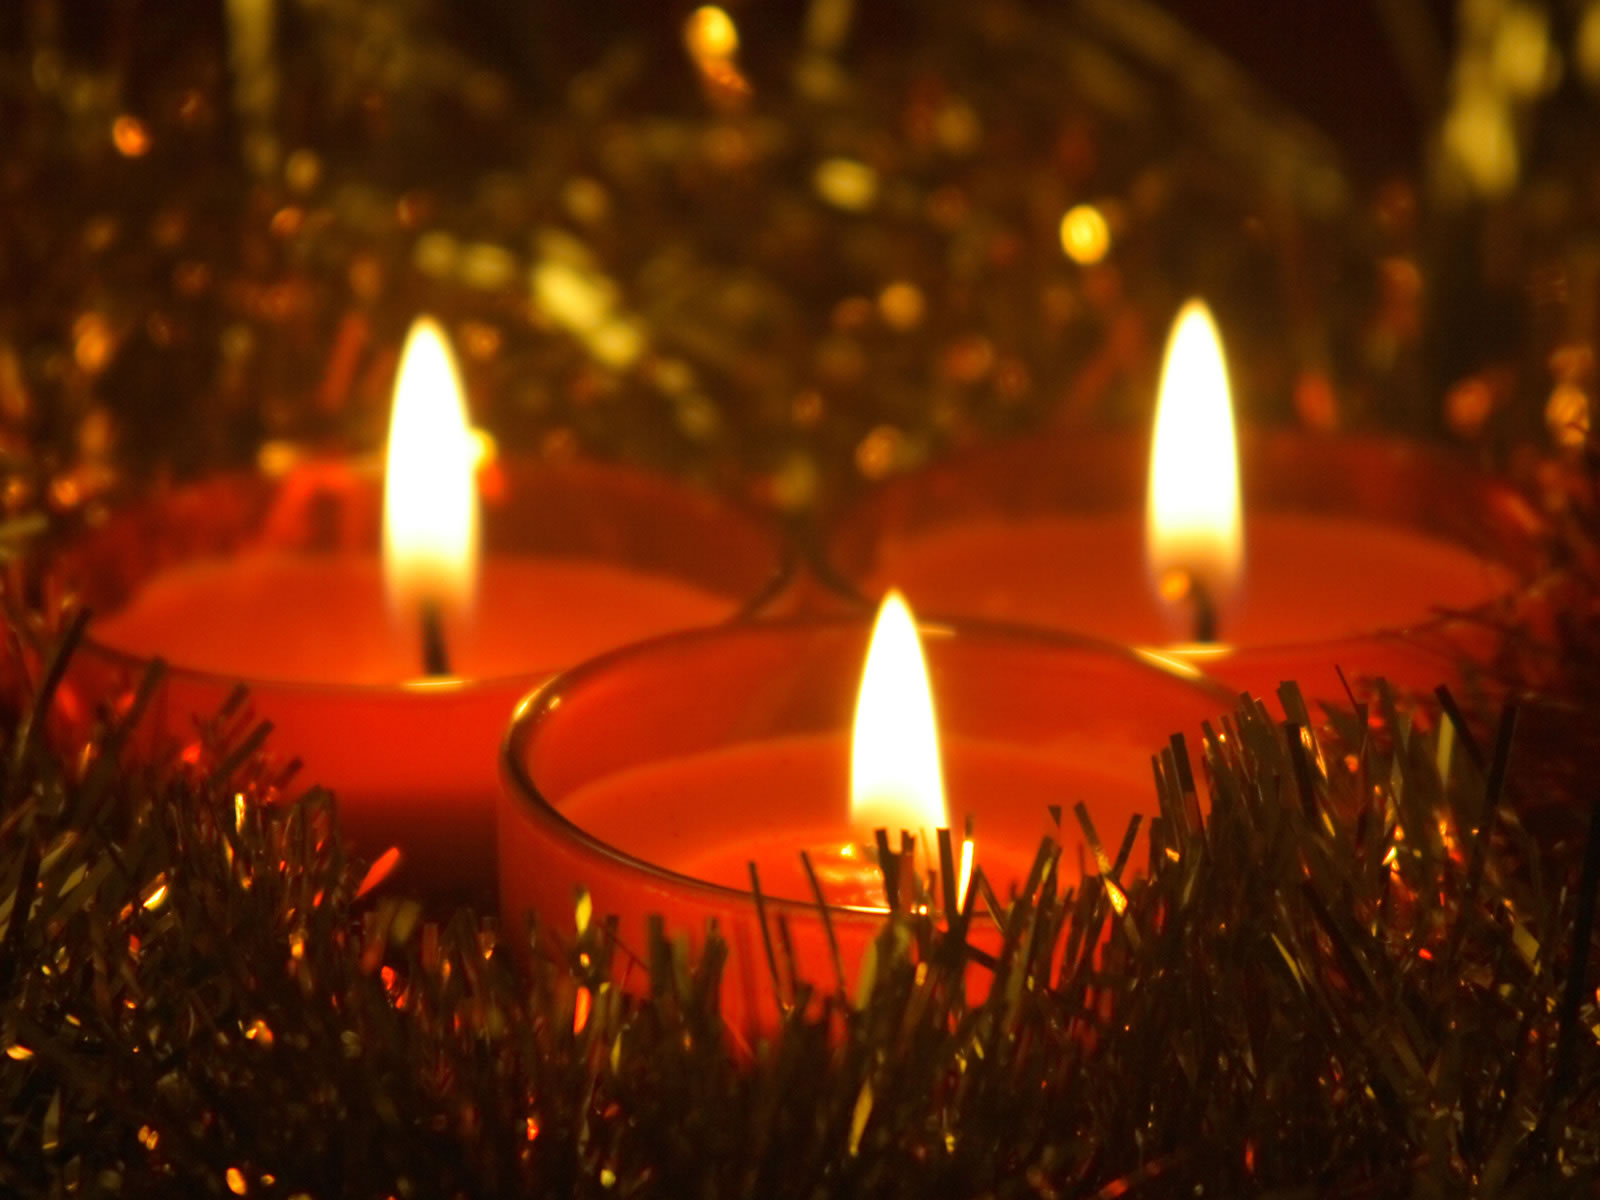 http://2.bp.blogspot.com/-eSMhBc8sDk8/Trgnf3E8uSI/AAAAAAAAAJA/tedteQJaCSg/s1600/beautiful-christmas-candles-wallpapers.jpg